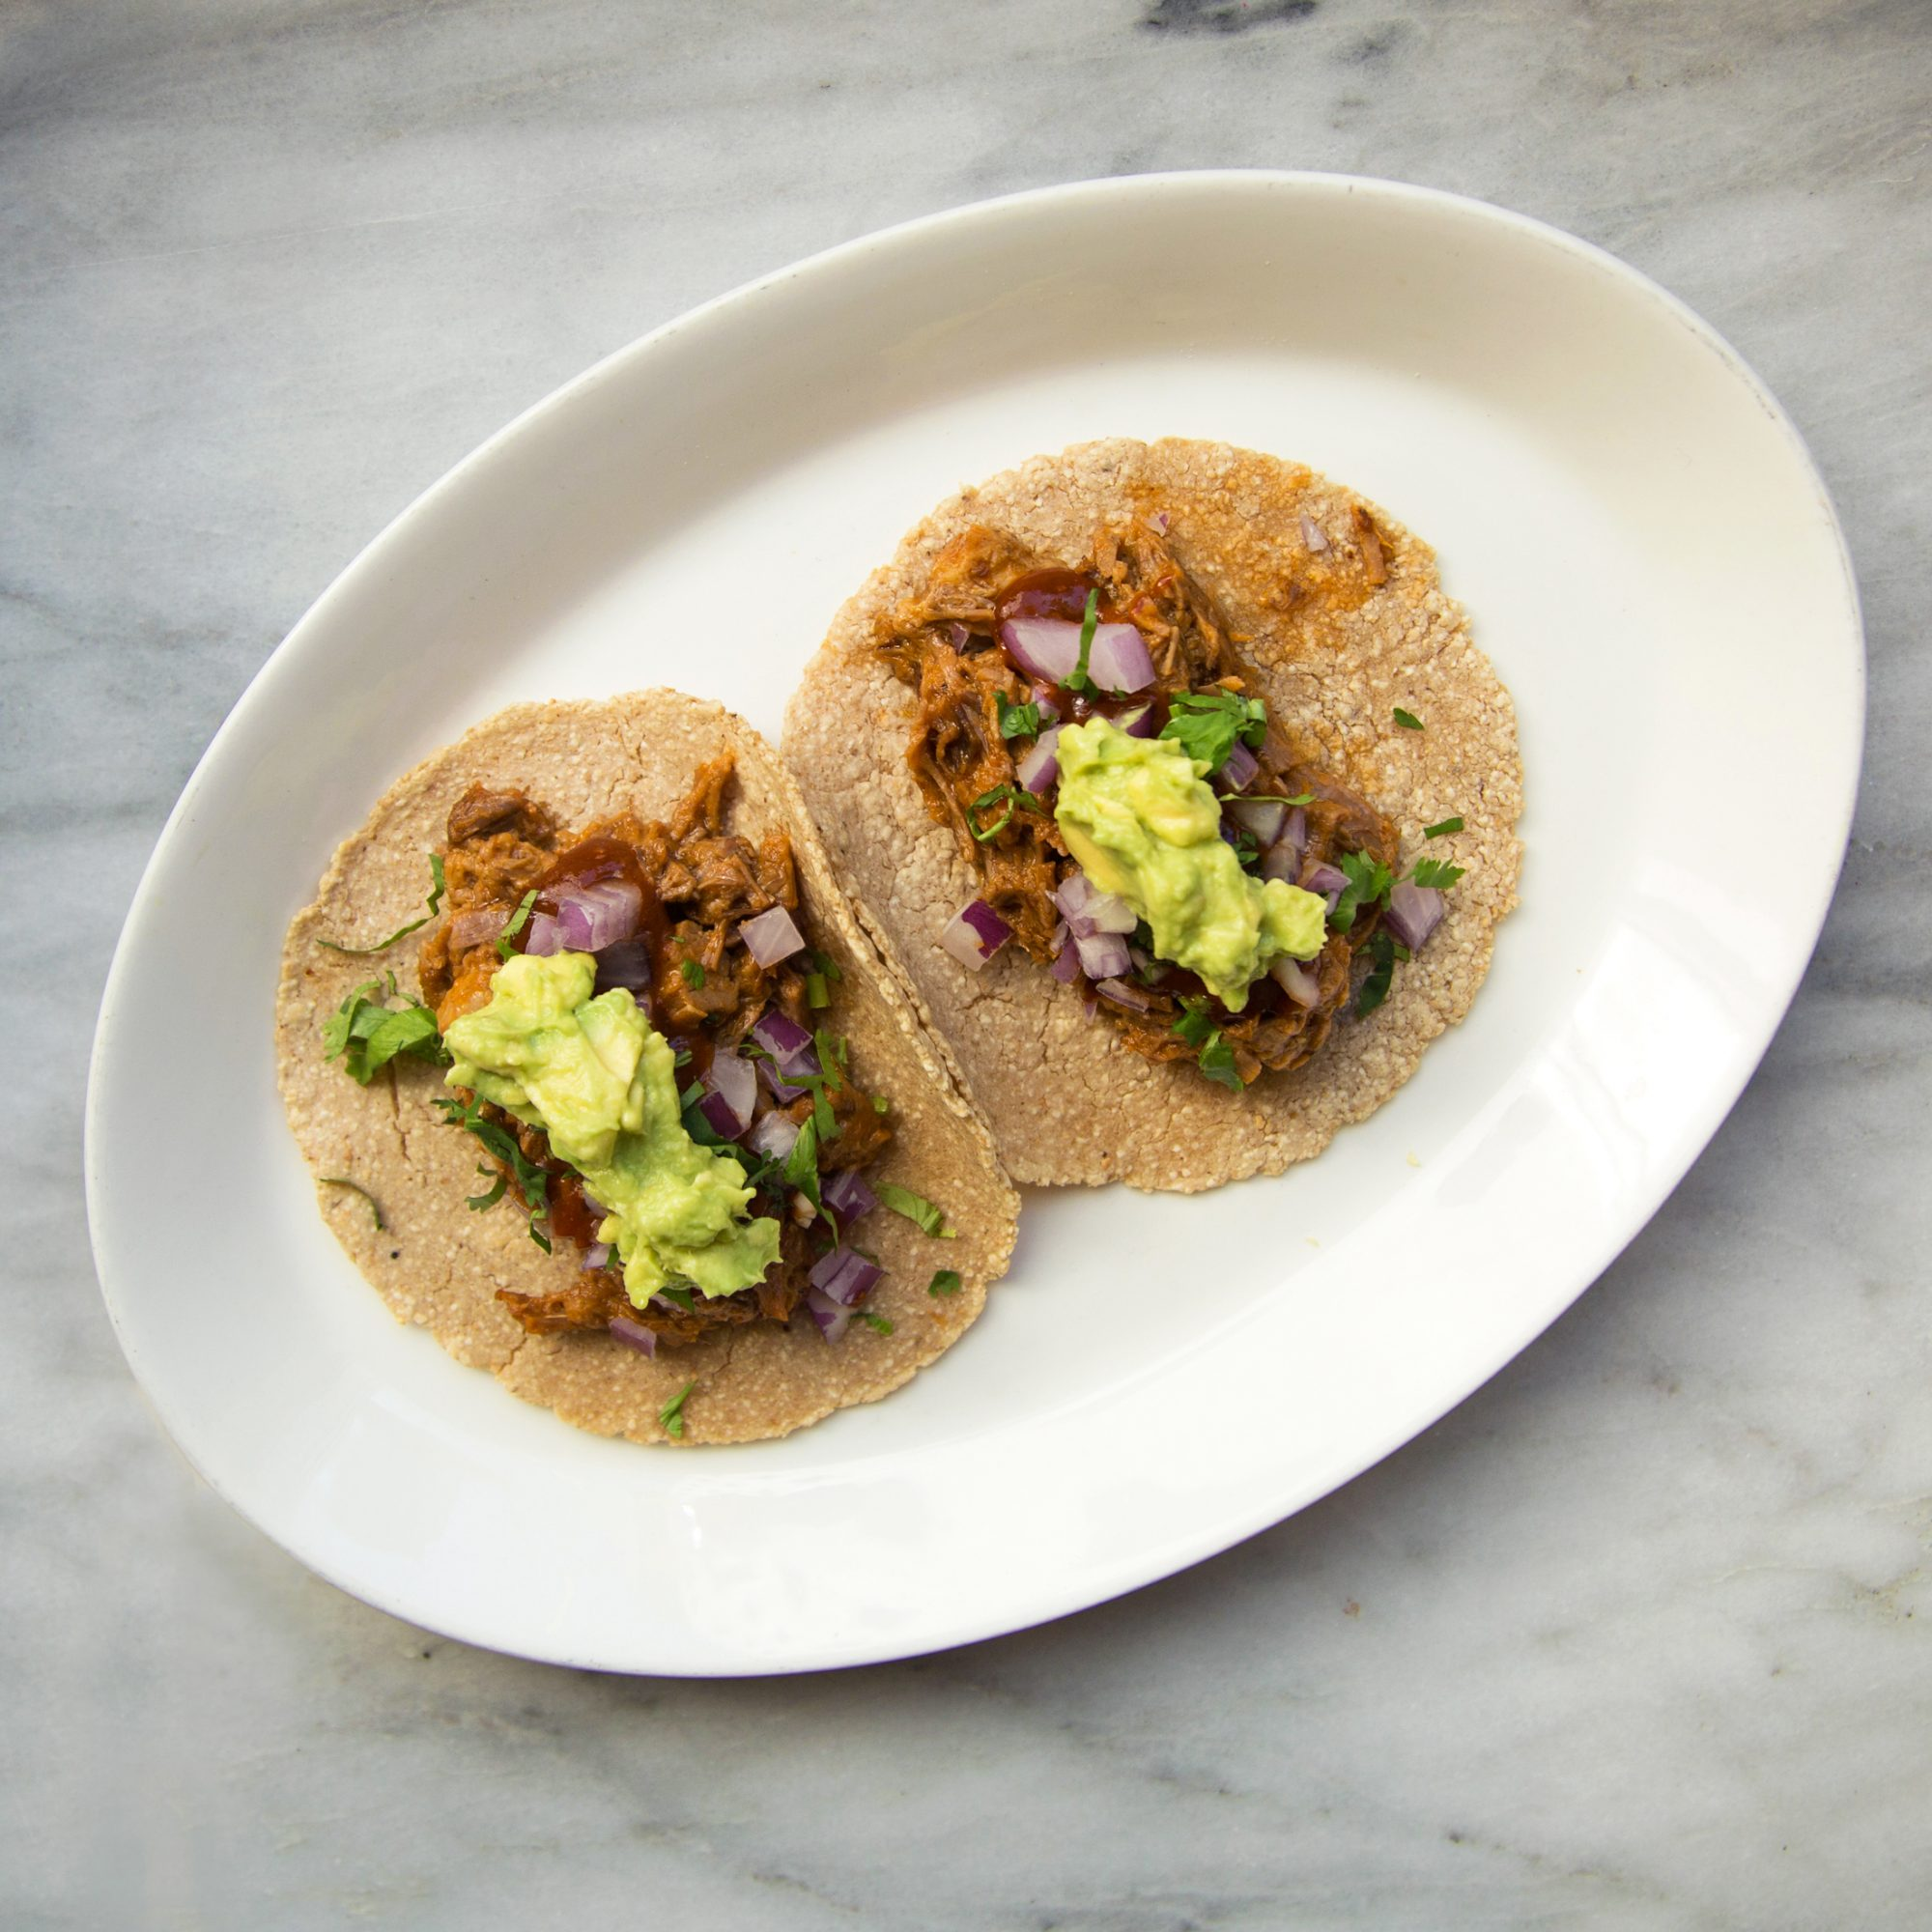 Braised Brisket Tacos with Matzo Tortillas